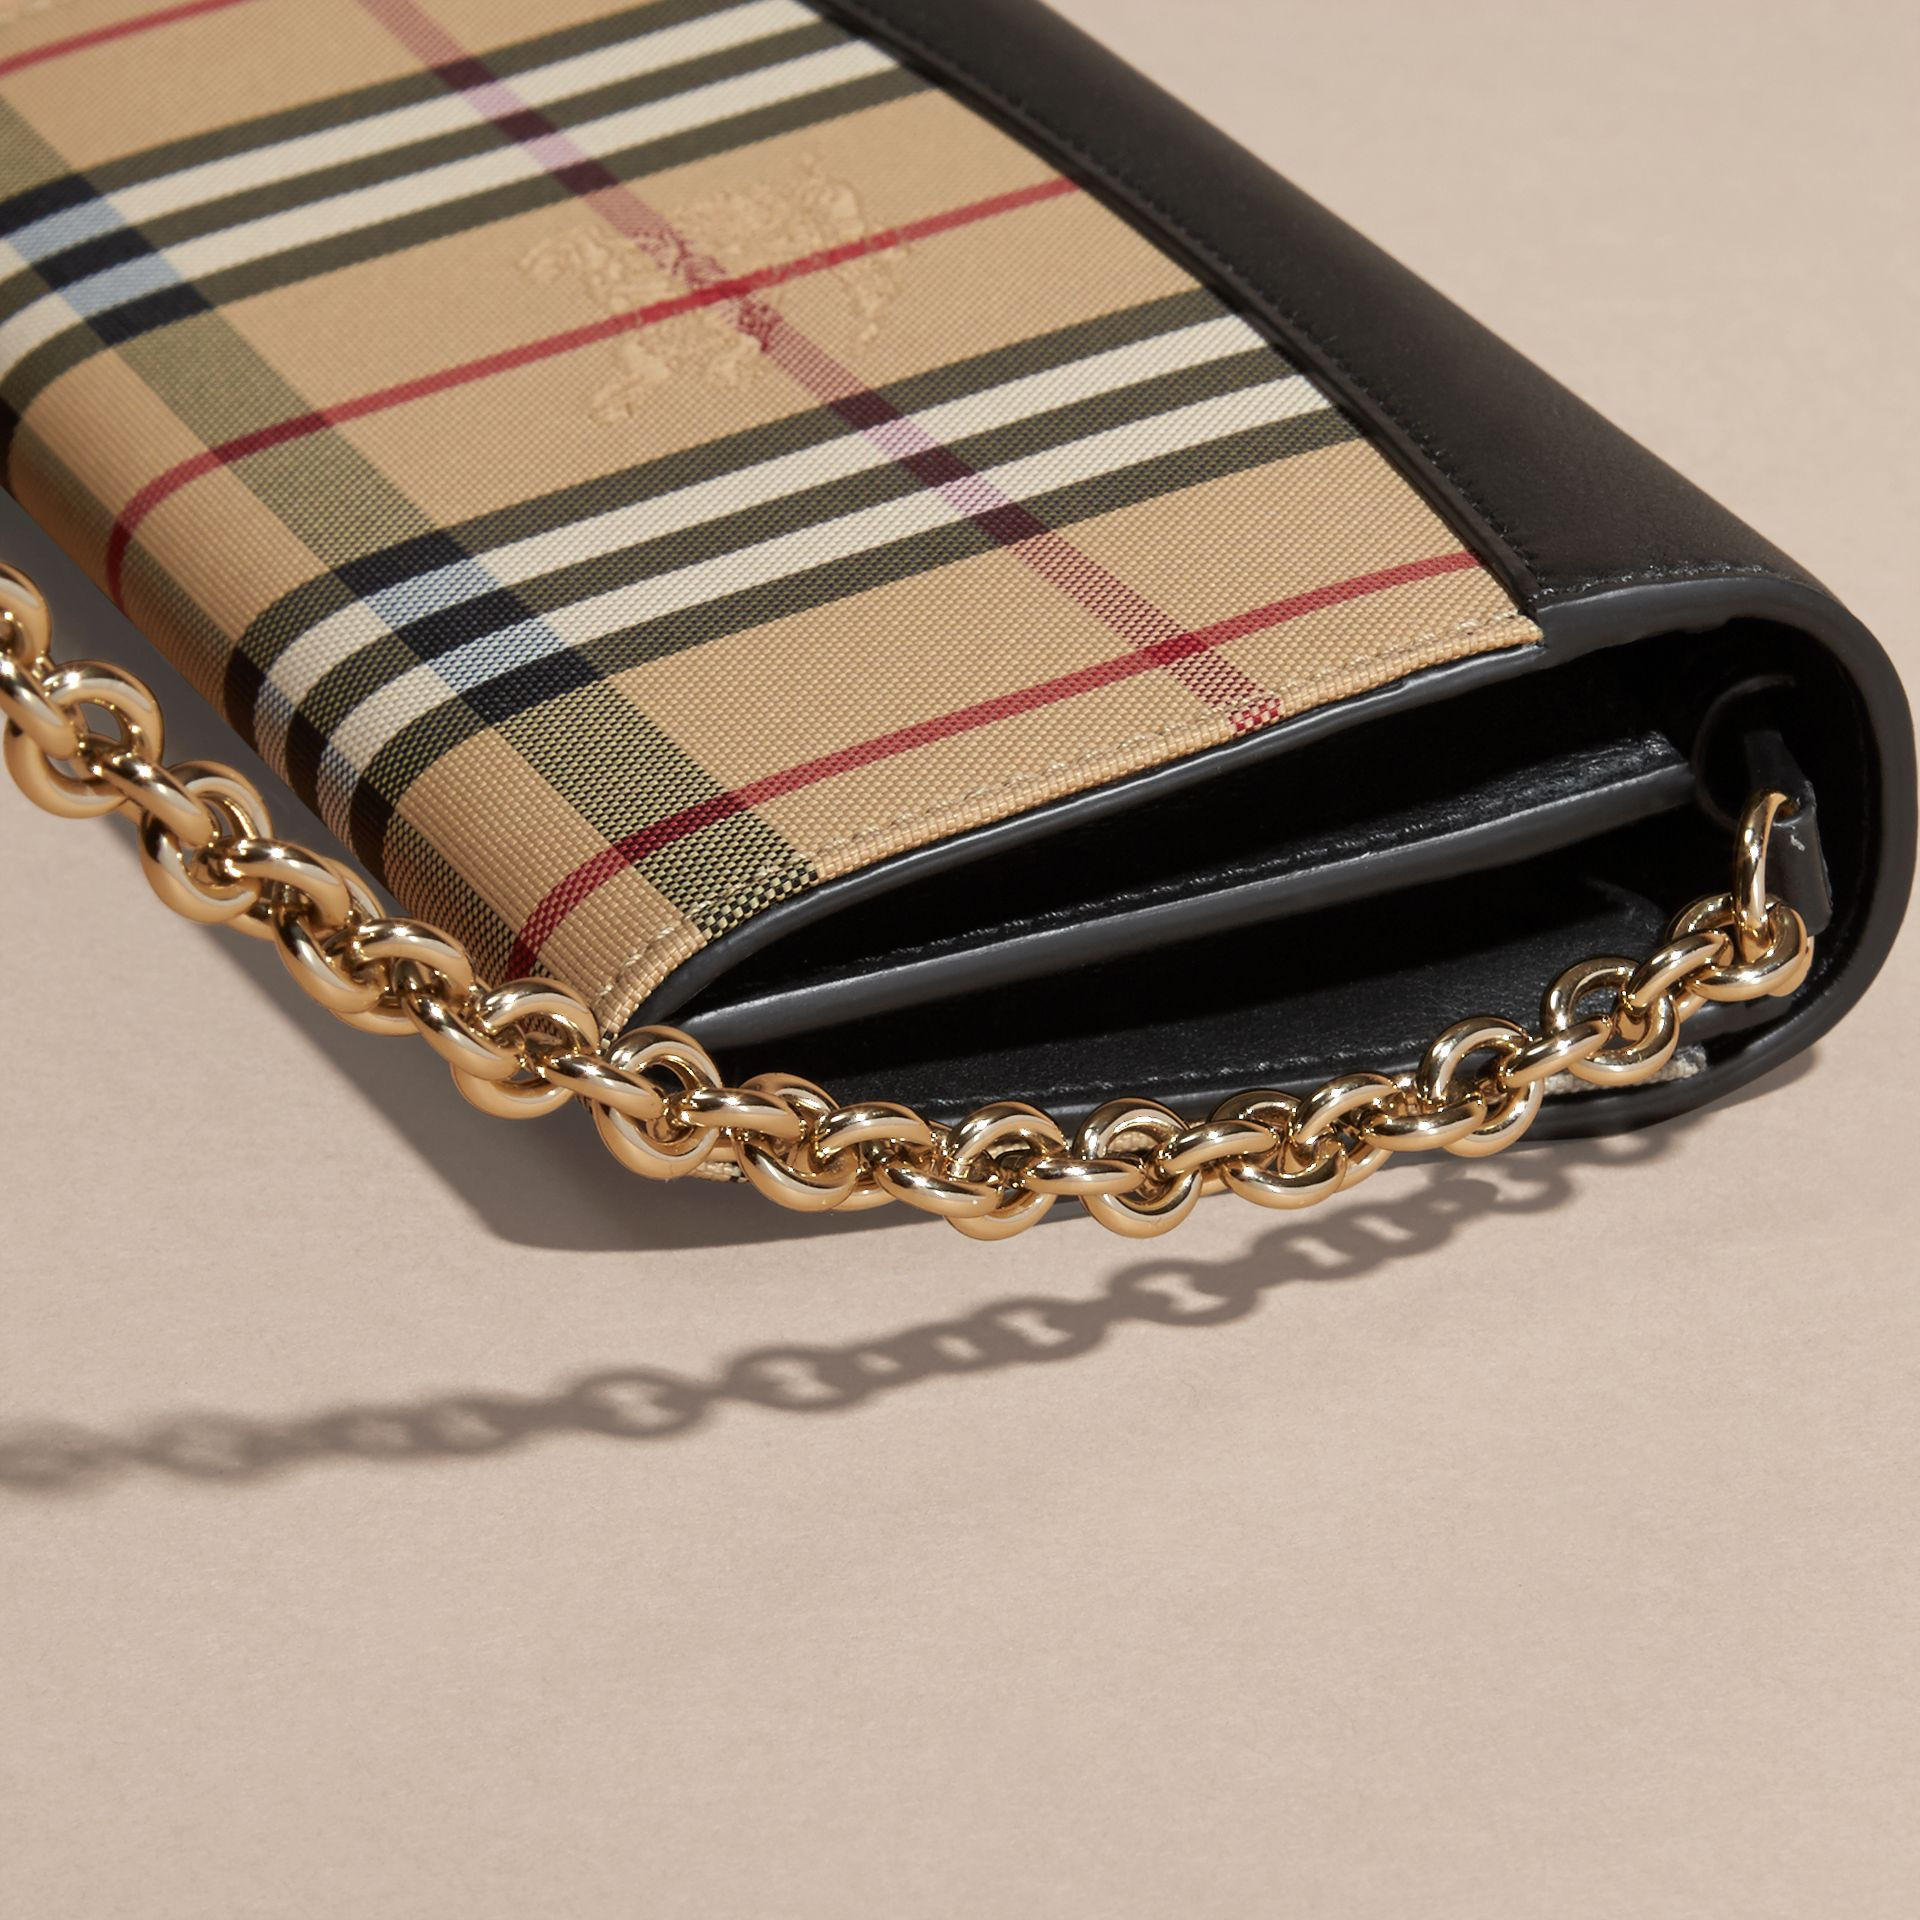 Horseferry Check and Leather Wallet with Chain in Black - Women | Burberry - gallery image 2